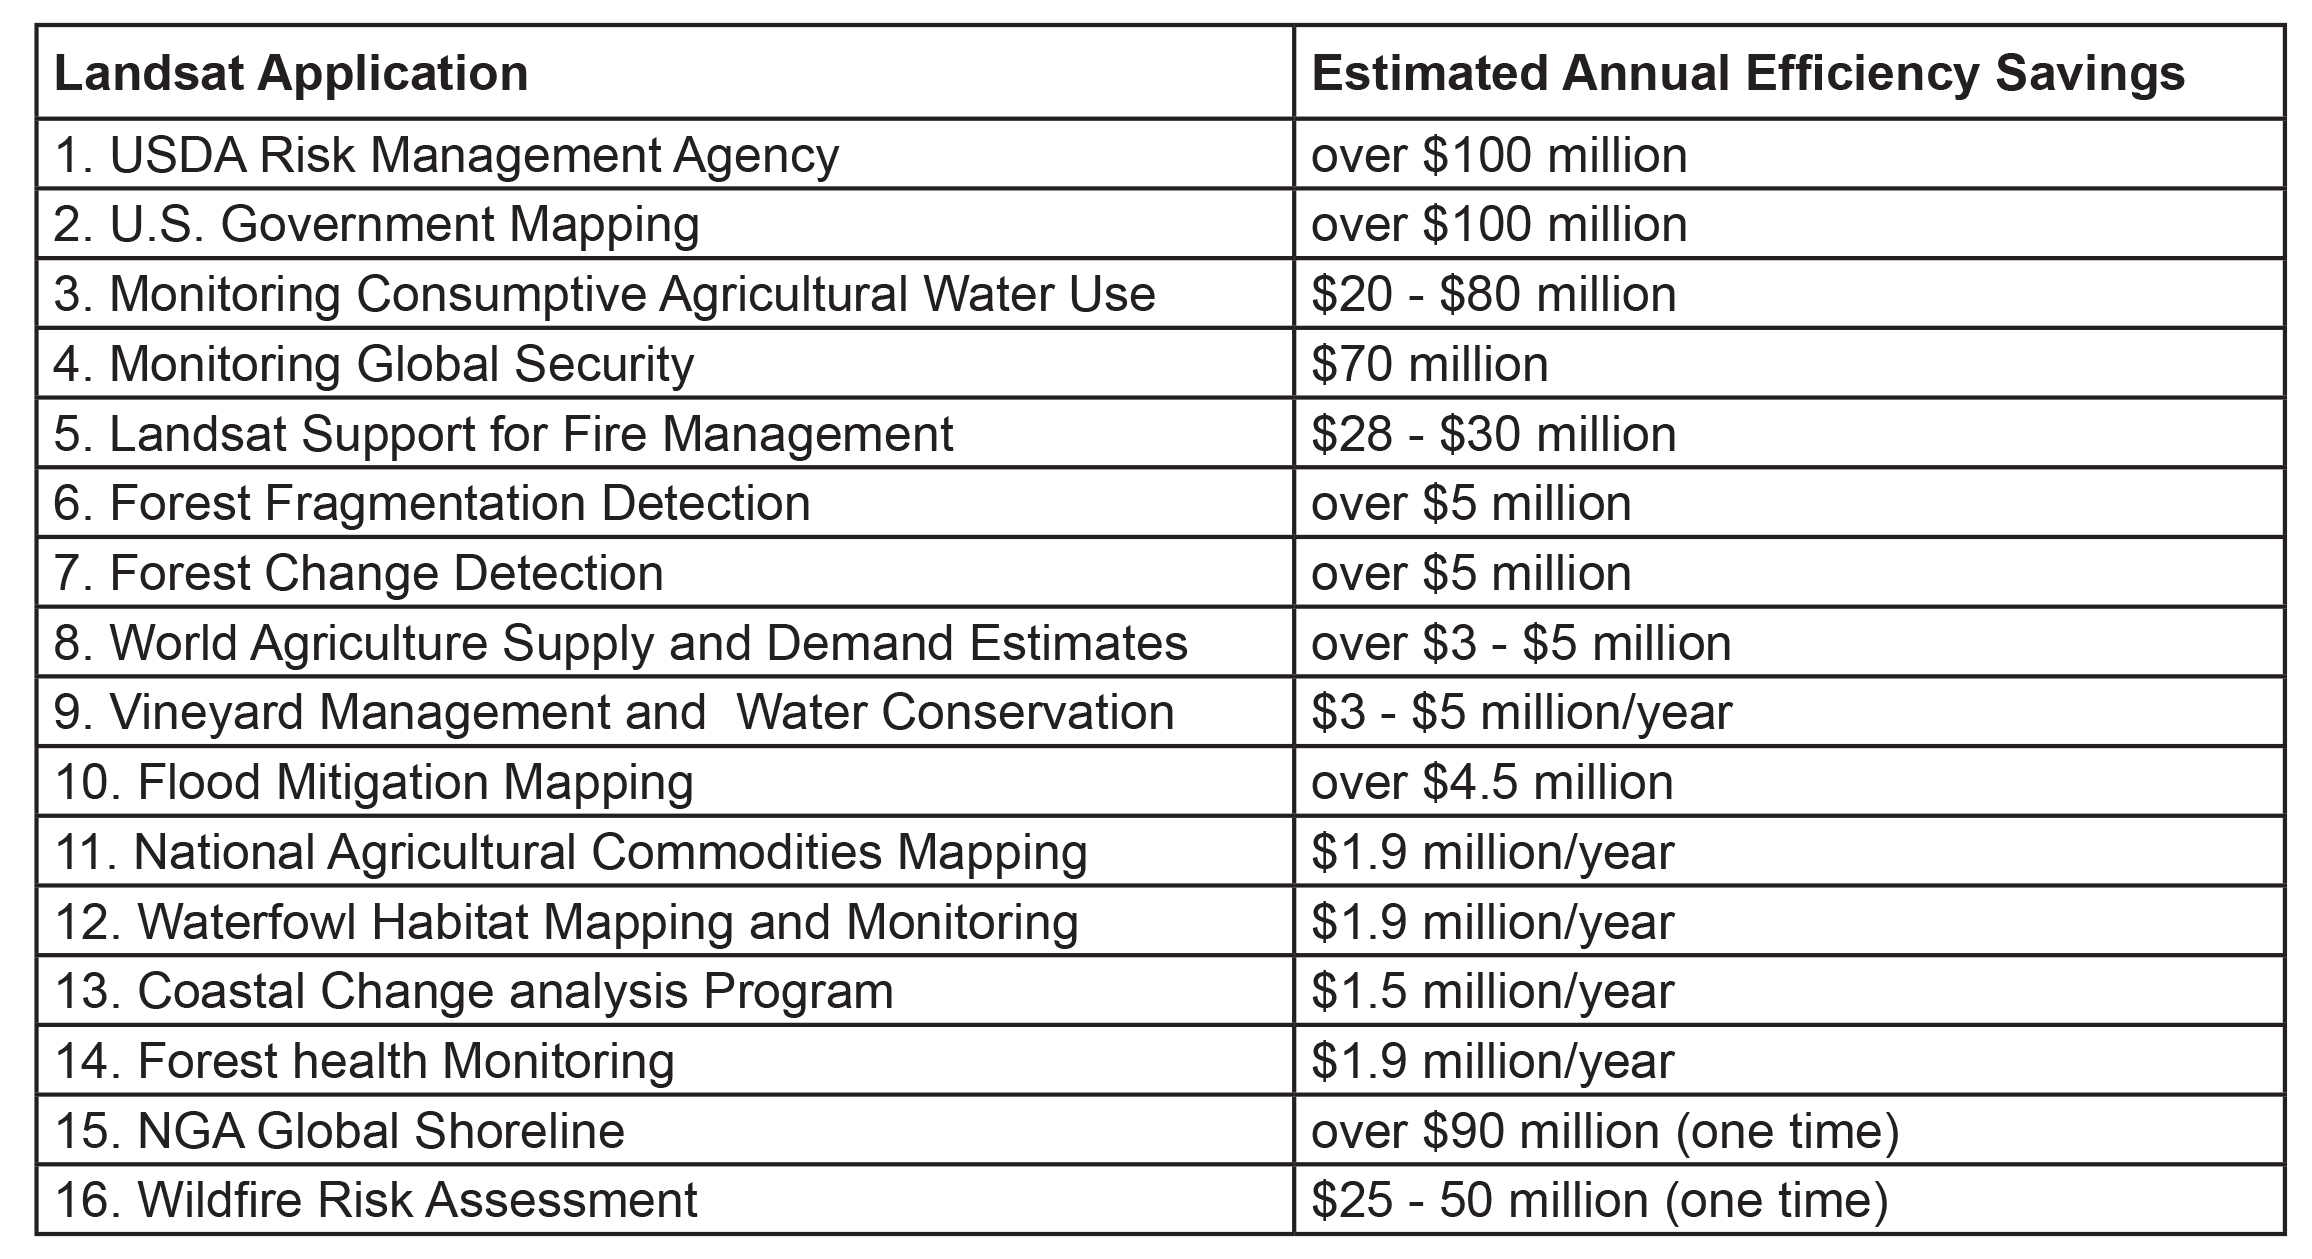 This table shows estimated productivity savings from diverse uses of Landsat imagery. These 16 Landsat applications alone produce savings of $350 million to over $436 million per year for Federal and State  Governments, NGOs, and the private sector. Further annual savings, societal benefits, and commercial applications are described in the Landsat Advisory Group report.